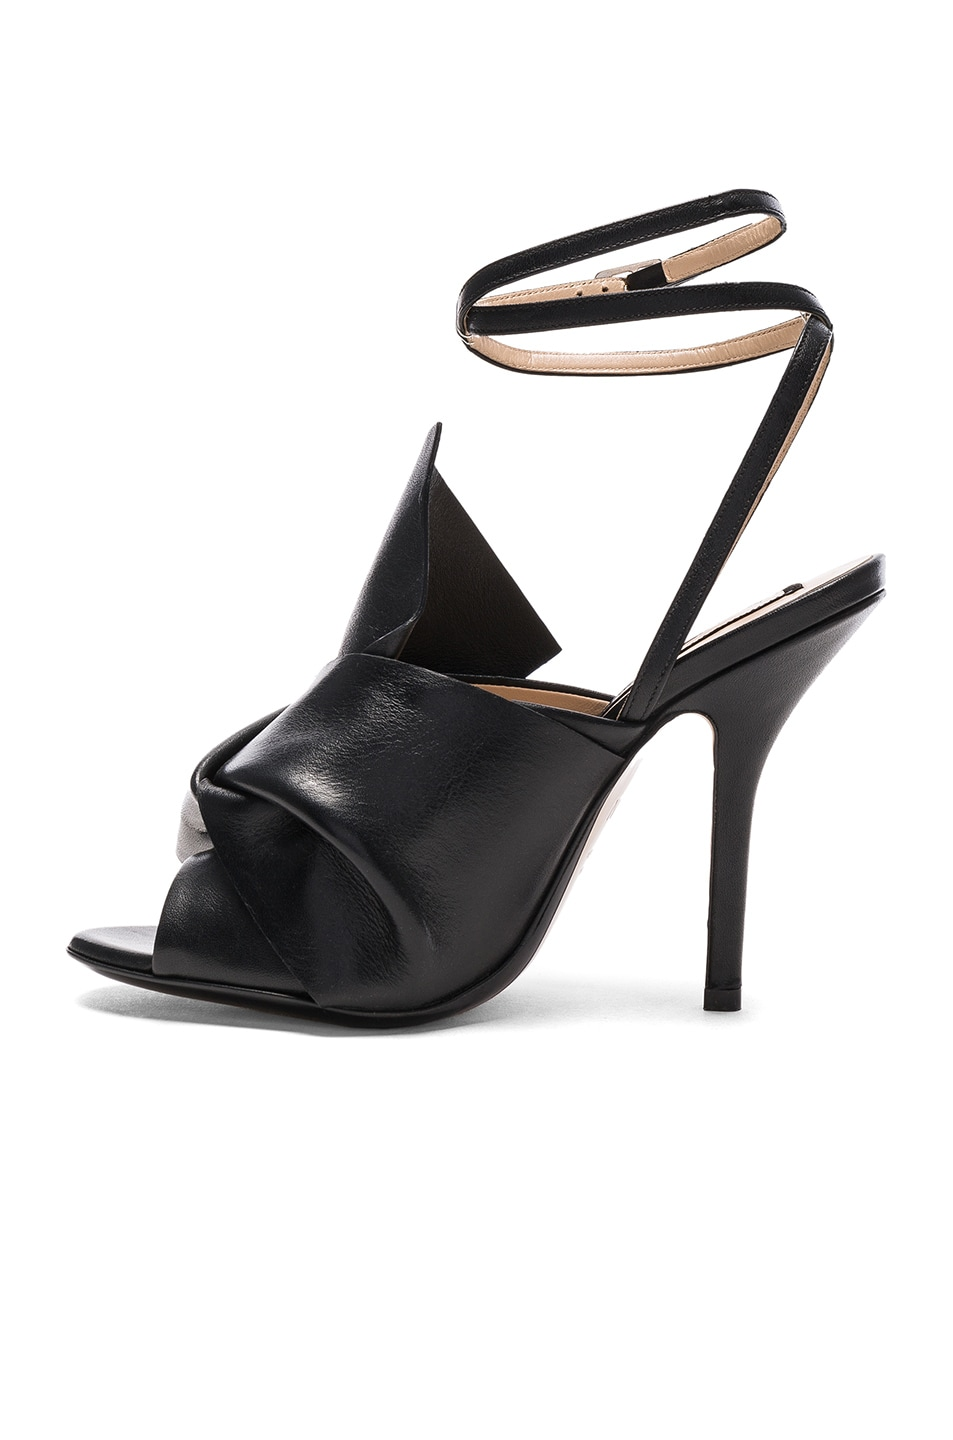 Image 5 of No. 21 Bow Leather Heels in Black